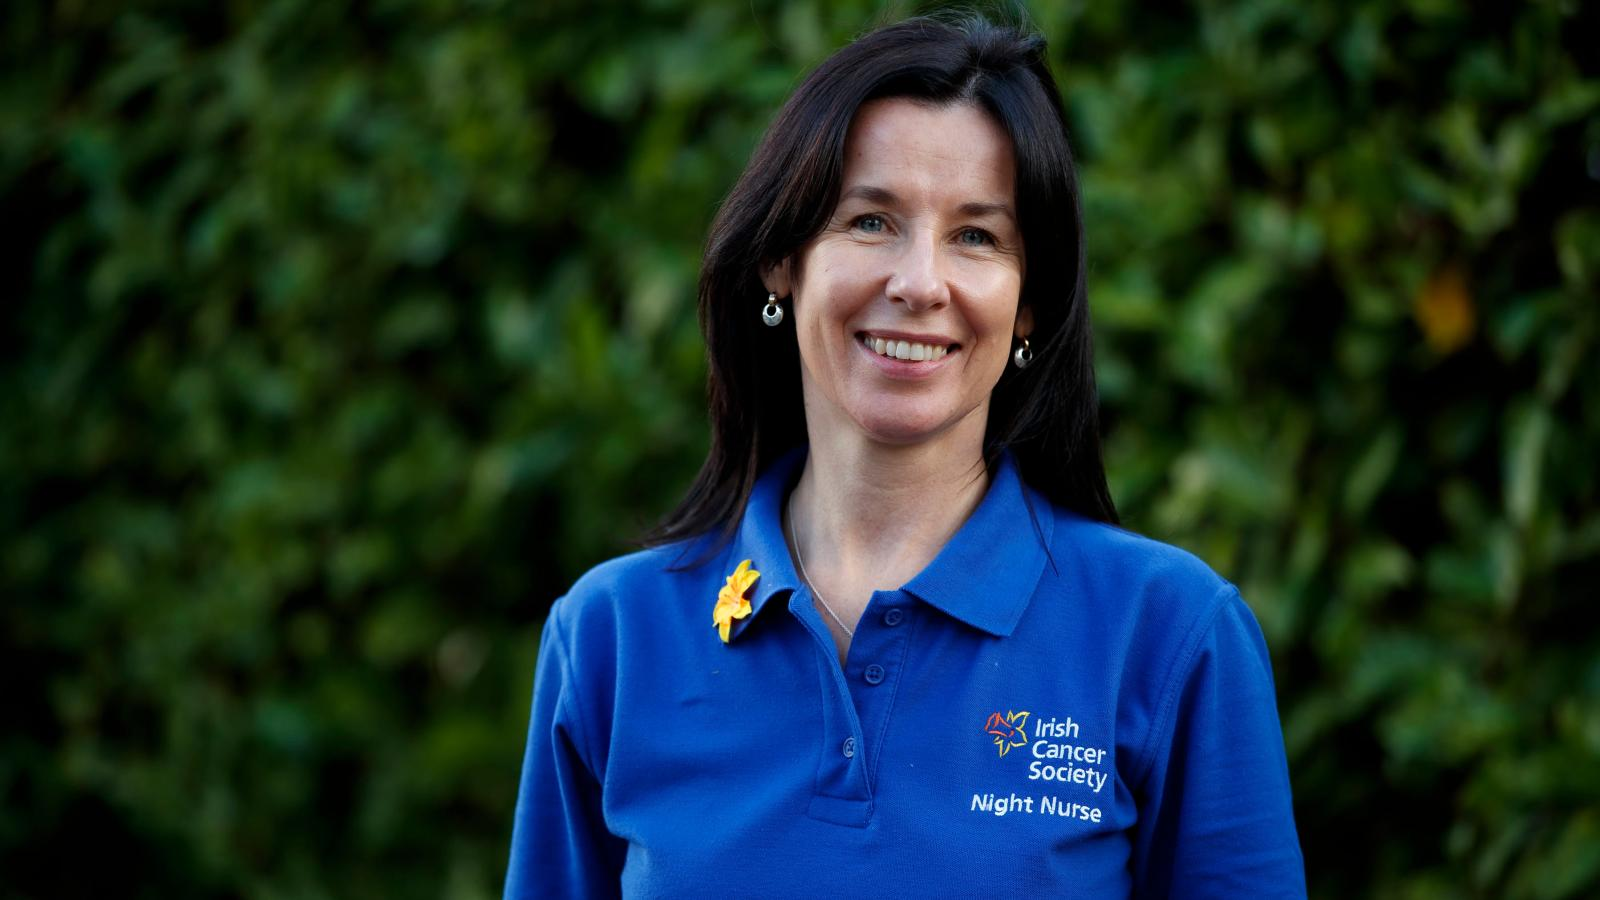 Susan Shaw, Irish Cancer Society Night Nurse